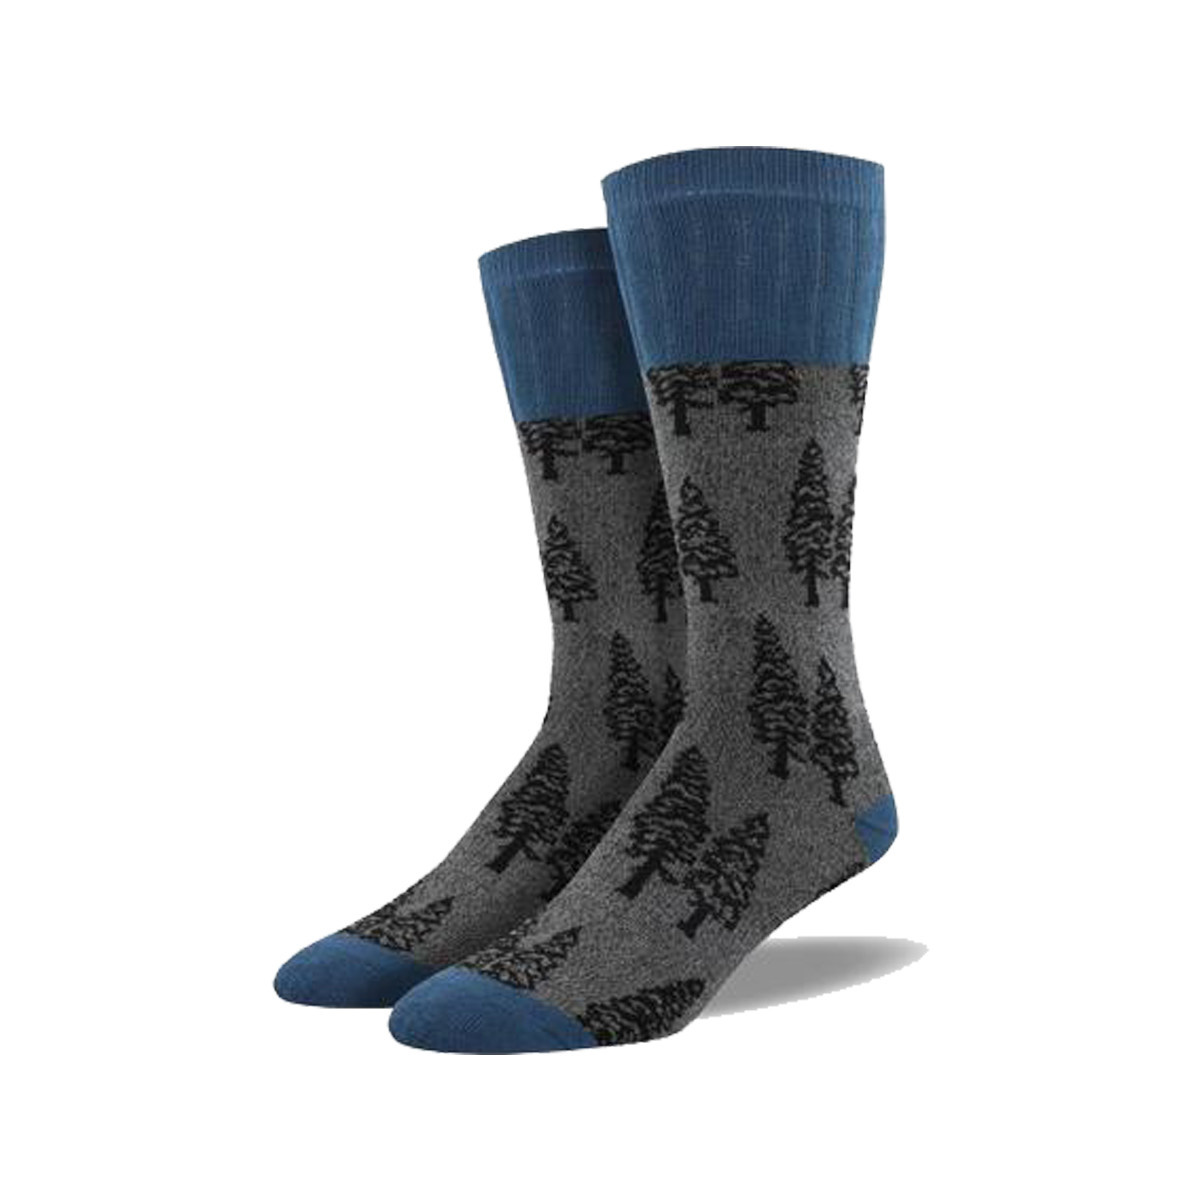 Socksmith Socksmith Men's Boot Socks